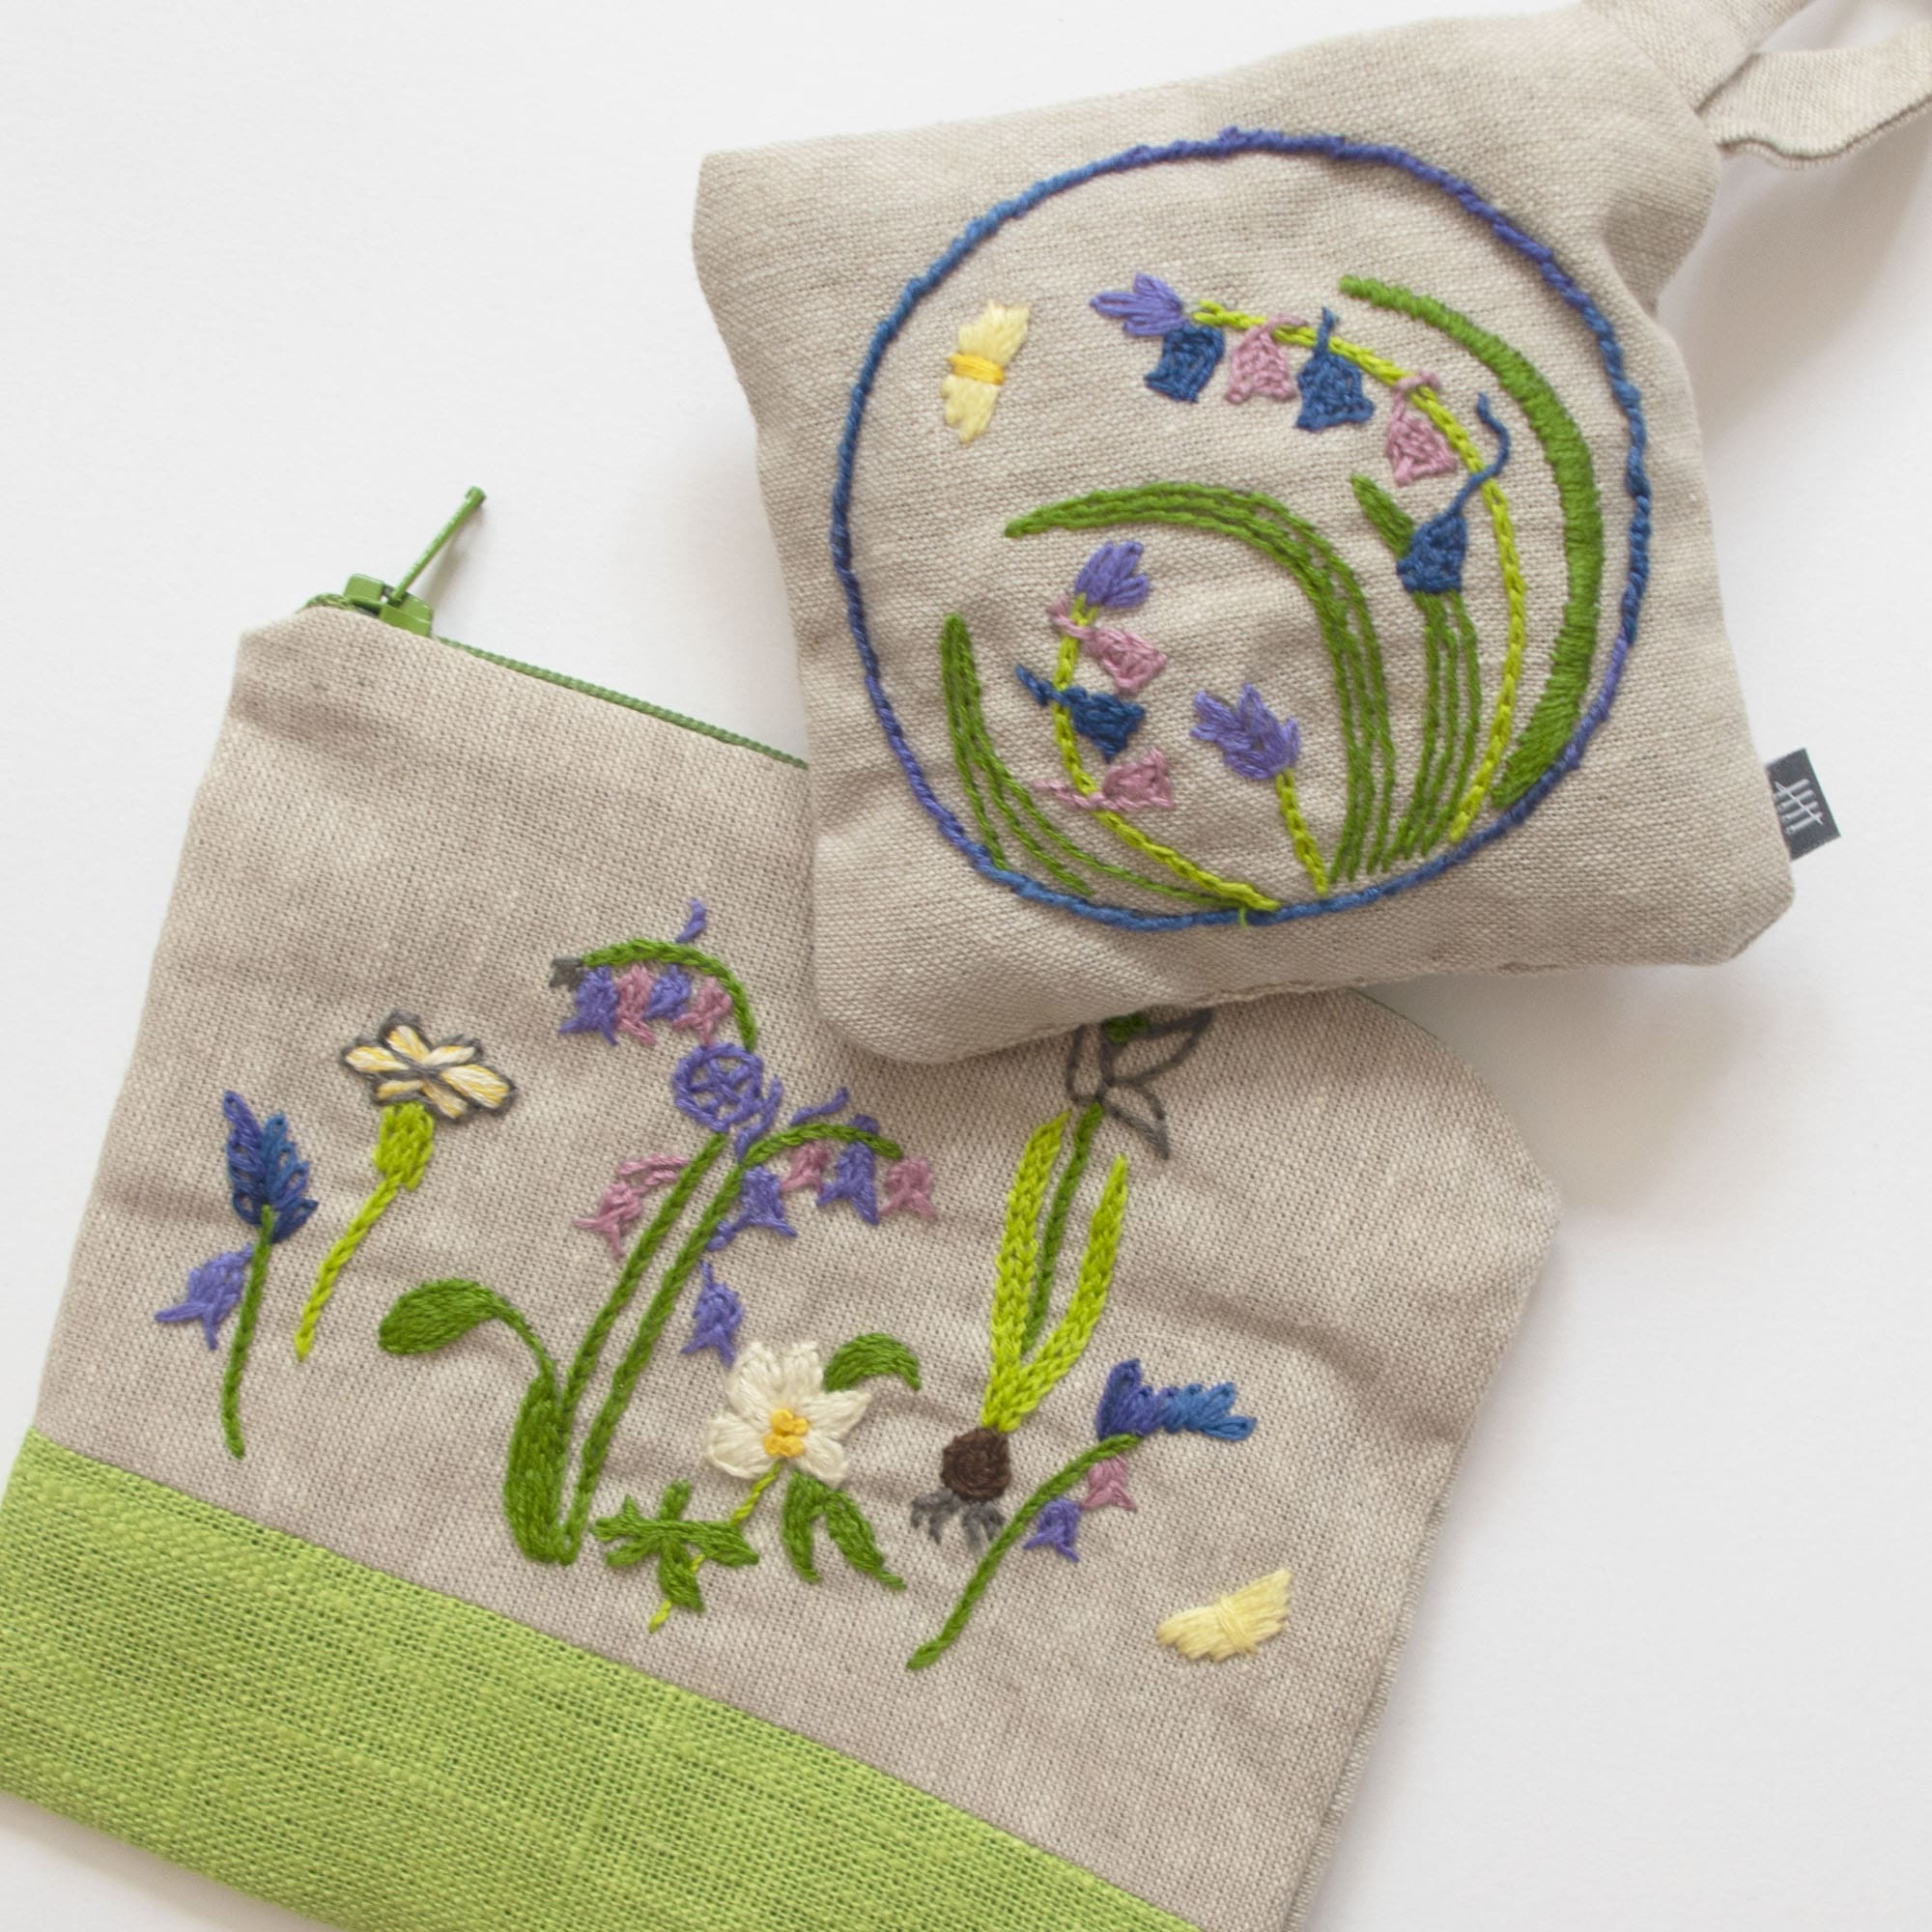 Plantlife Hand Embroidered Lavender Bag and Purse Floral Flower Butterfly Fine Cell Work